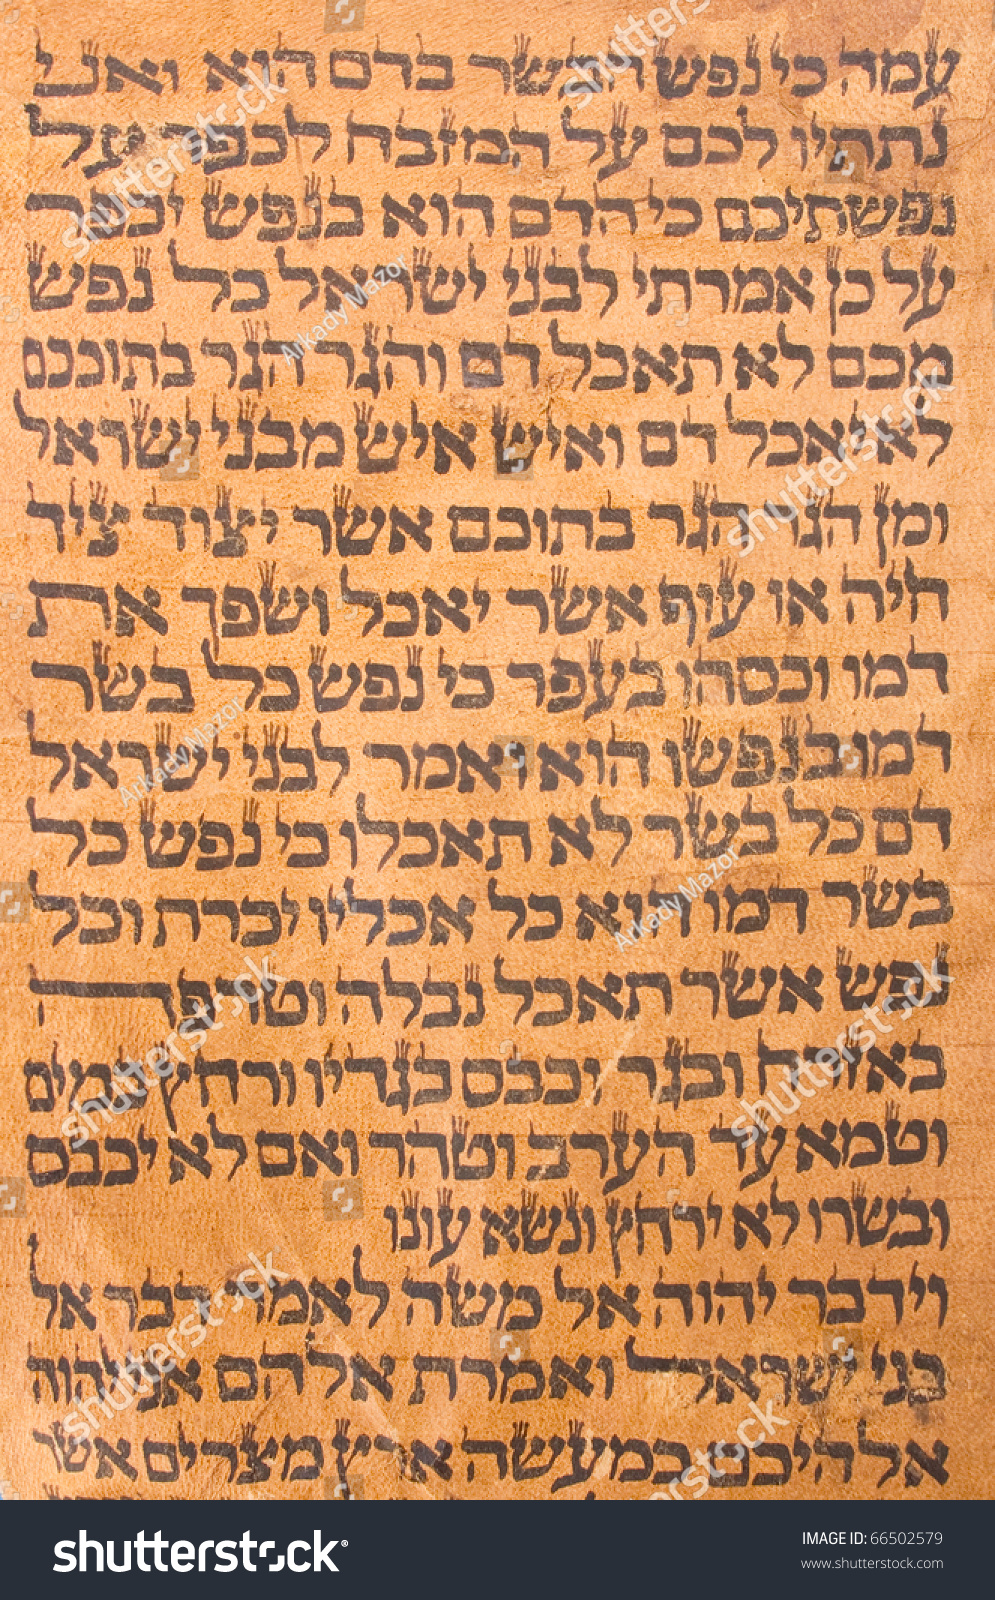 english tanakh essay Answers to all toefl essay questions 518 pages learning to read biblical hebrew, a biblical hebrew study group - ed's journal by pastor edw hebrew and english side-by side this.